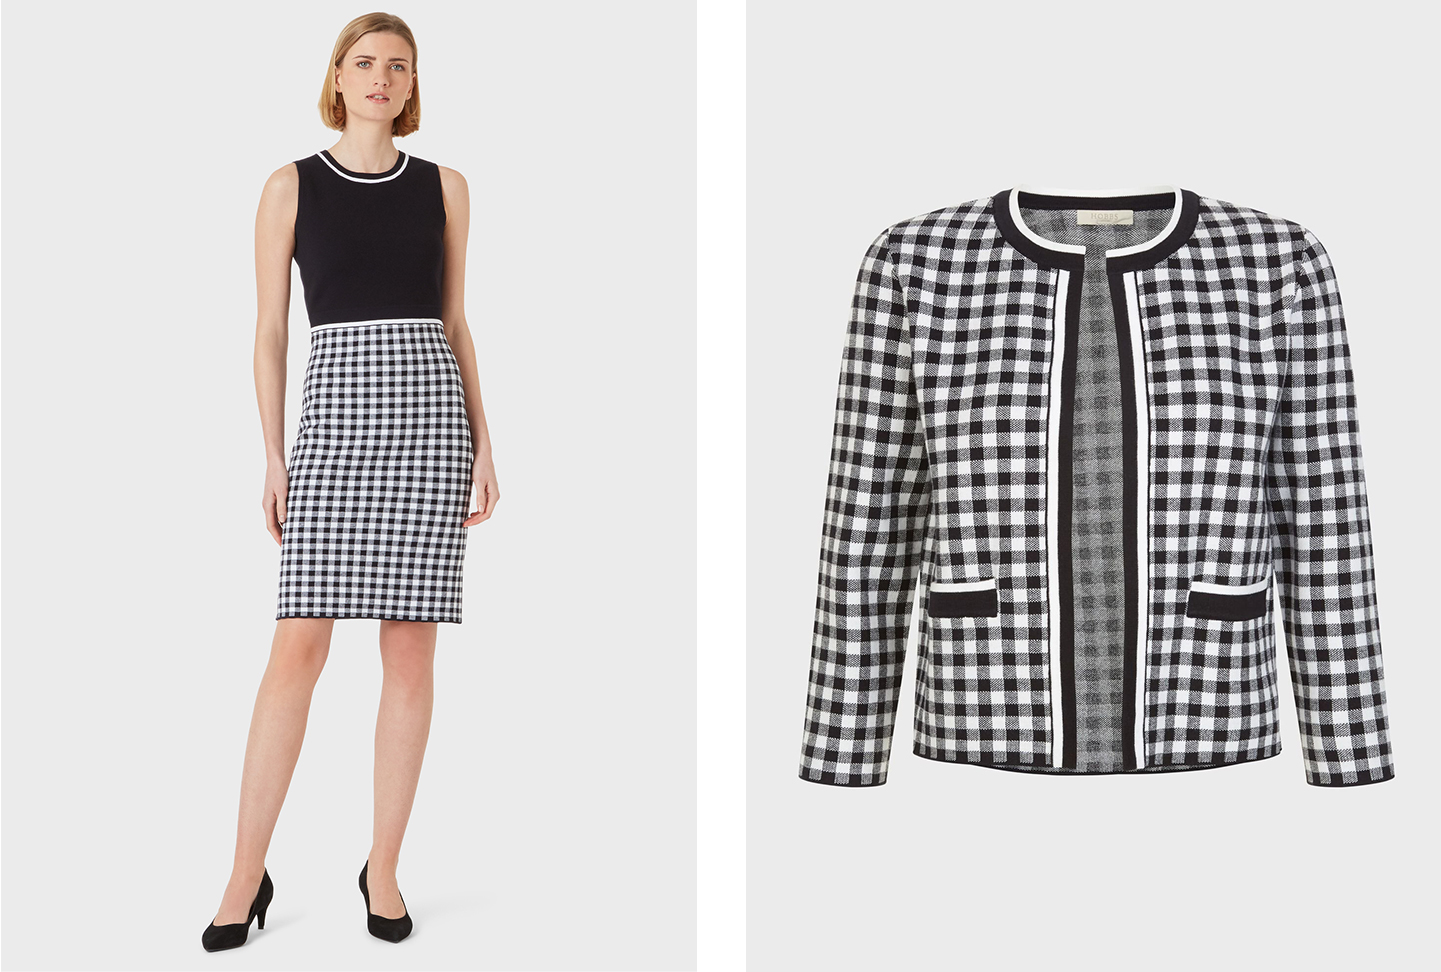 The left shows a sleeveless knitted dress with a gingham print skirt detail in black and white worn with black court shoes, pair with a matching gingham cardigan such as the one shown on the right image to coordinate the look. All from Hobbs.